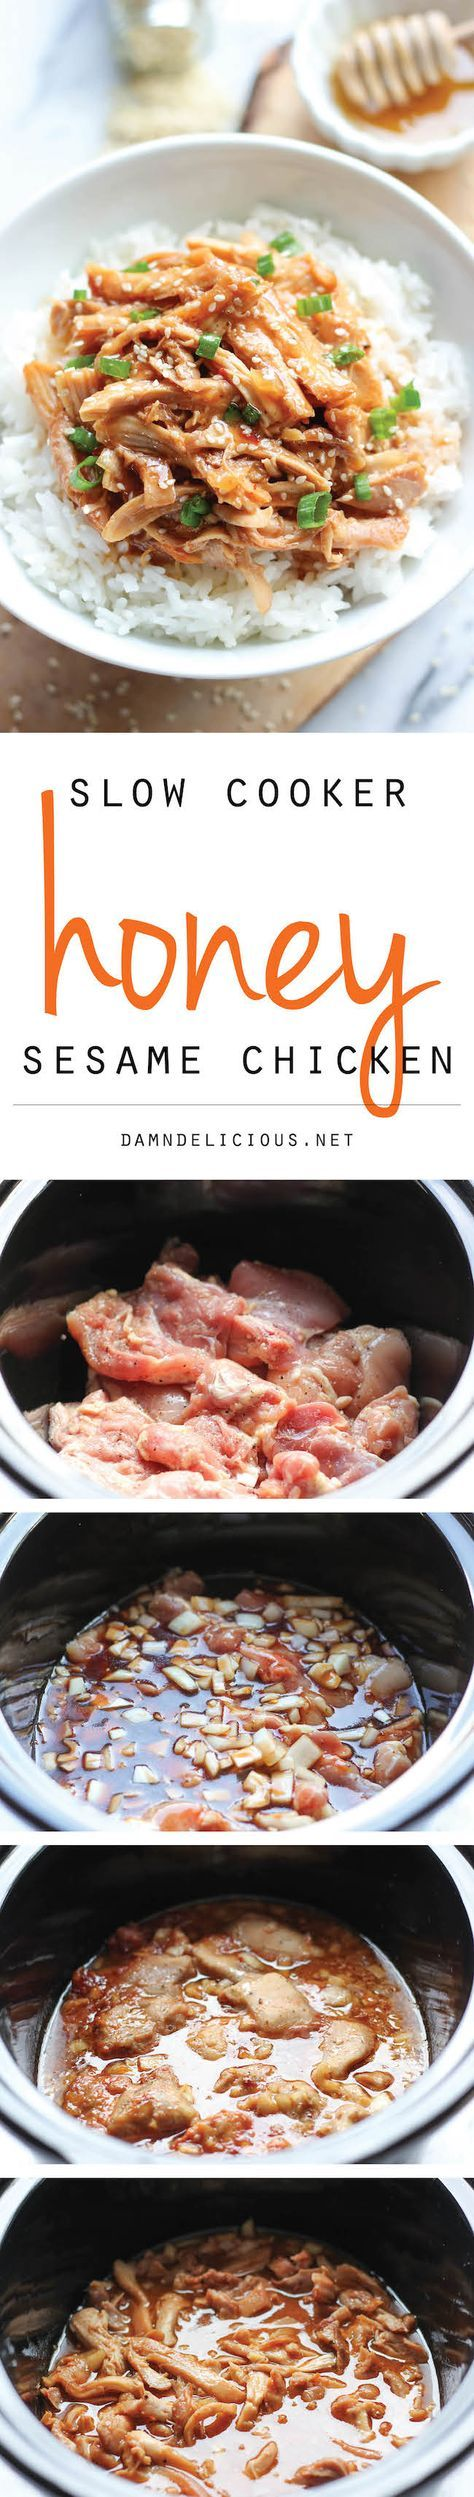 Slow Cooker Honey Sesame Chicken 8 points plus according to Weight watchers recipe builder made 4/6/2015 absolutely delicious